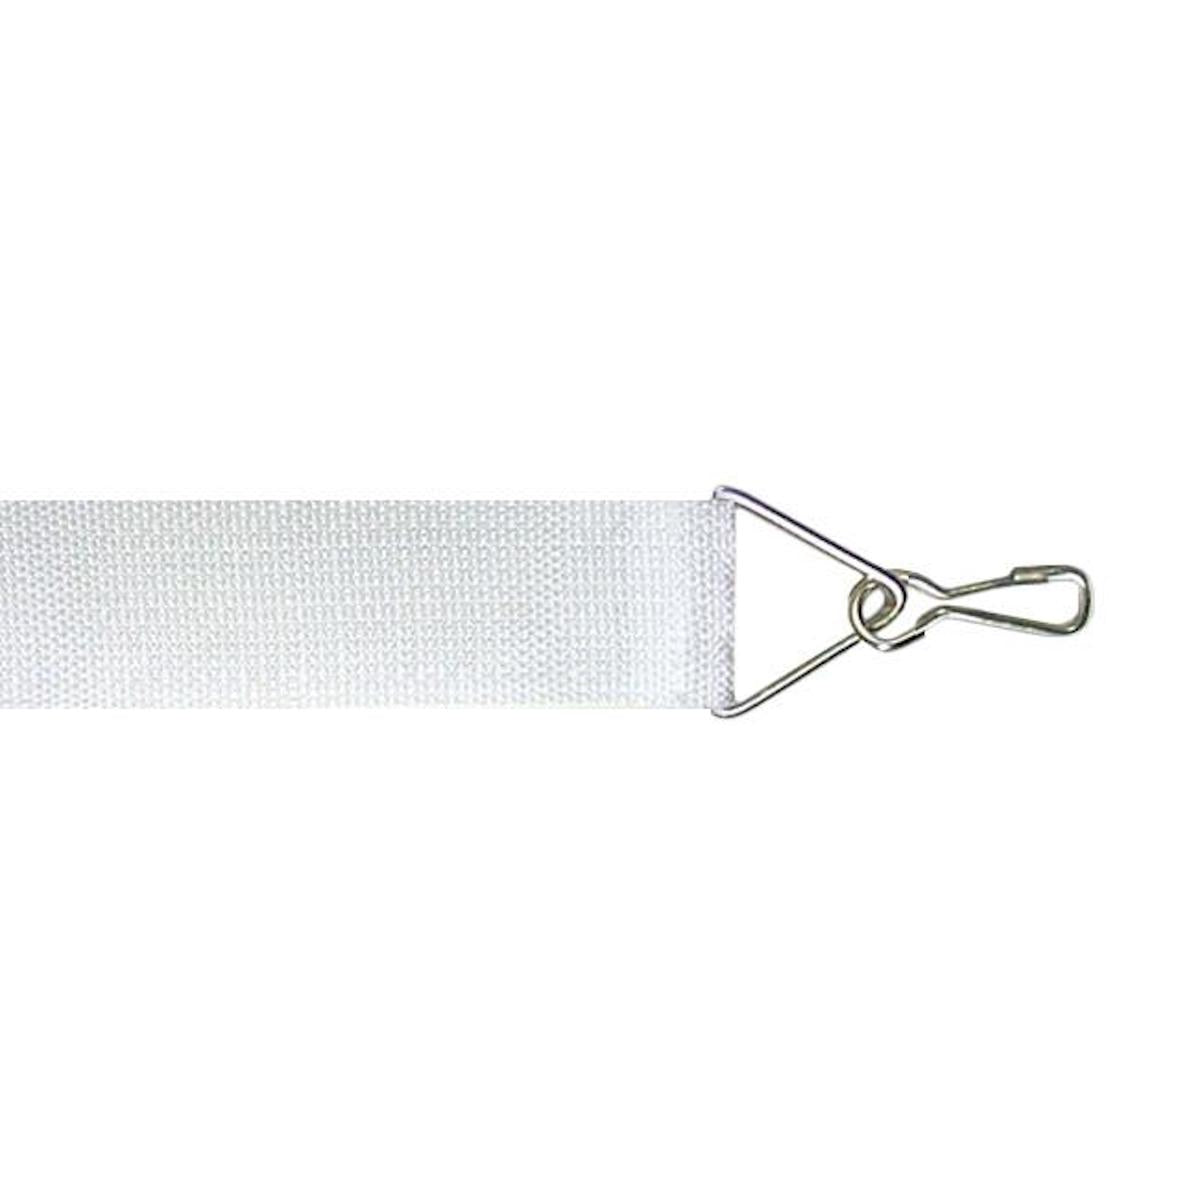 Izzo Samba Nylon Belt